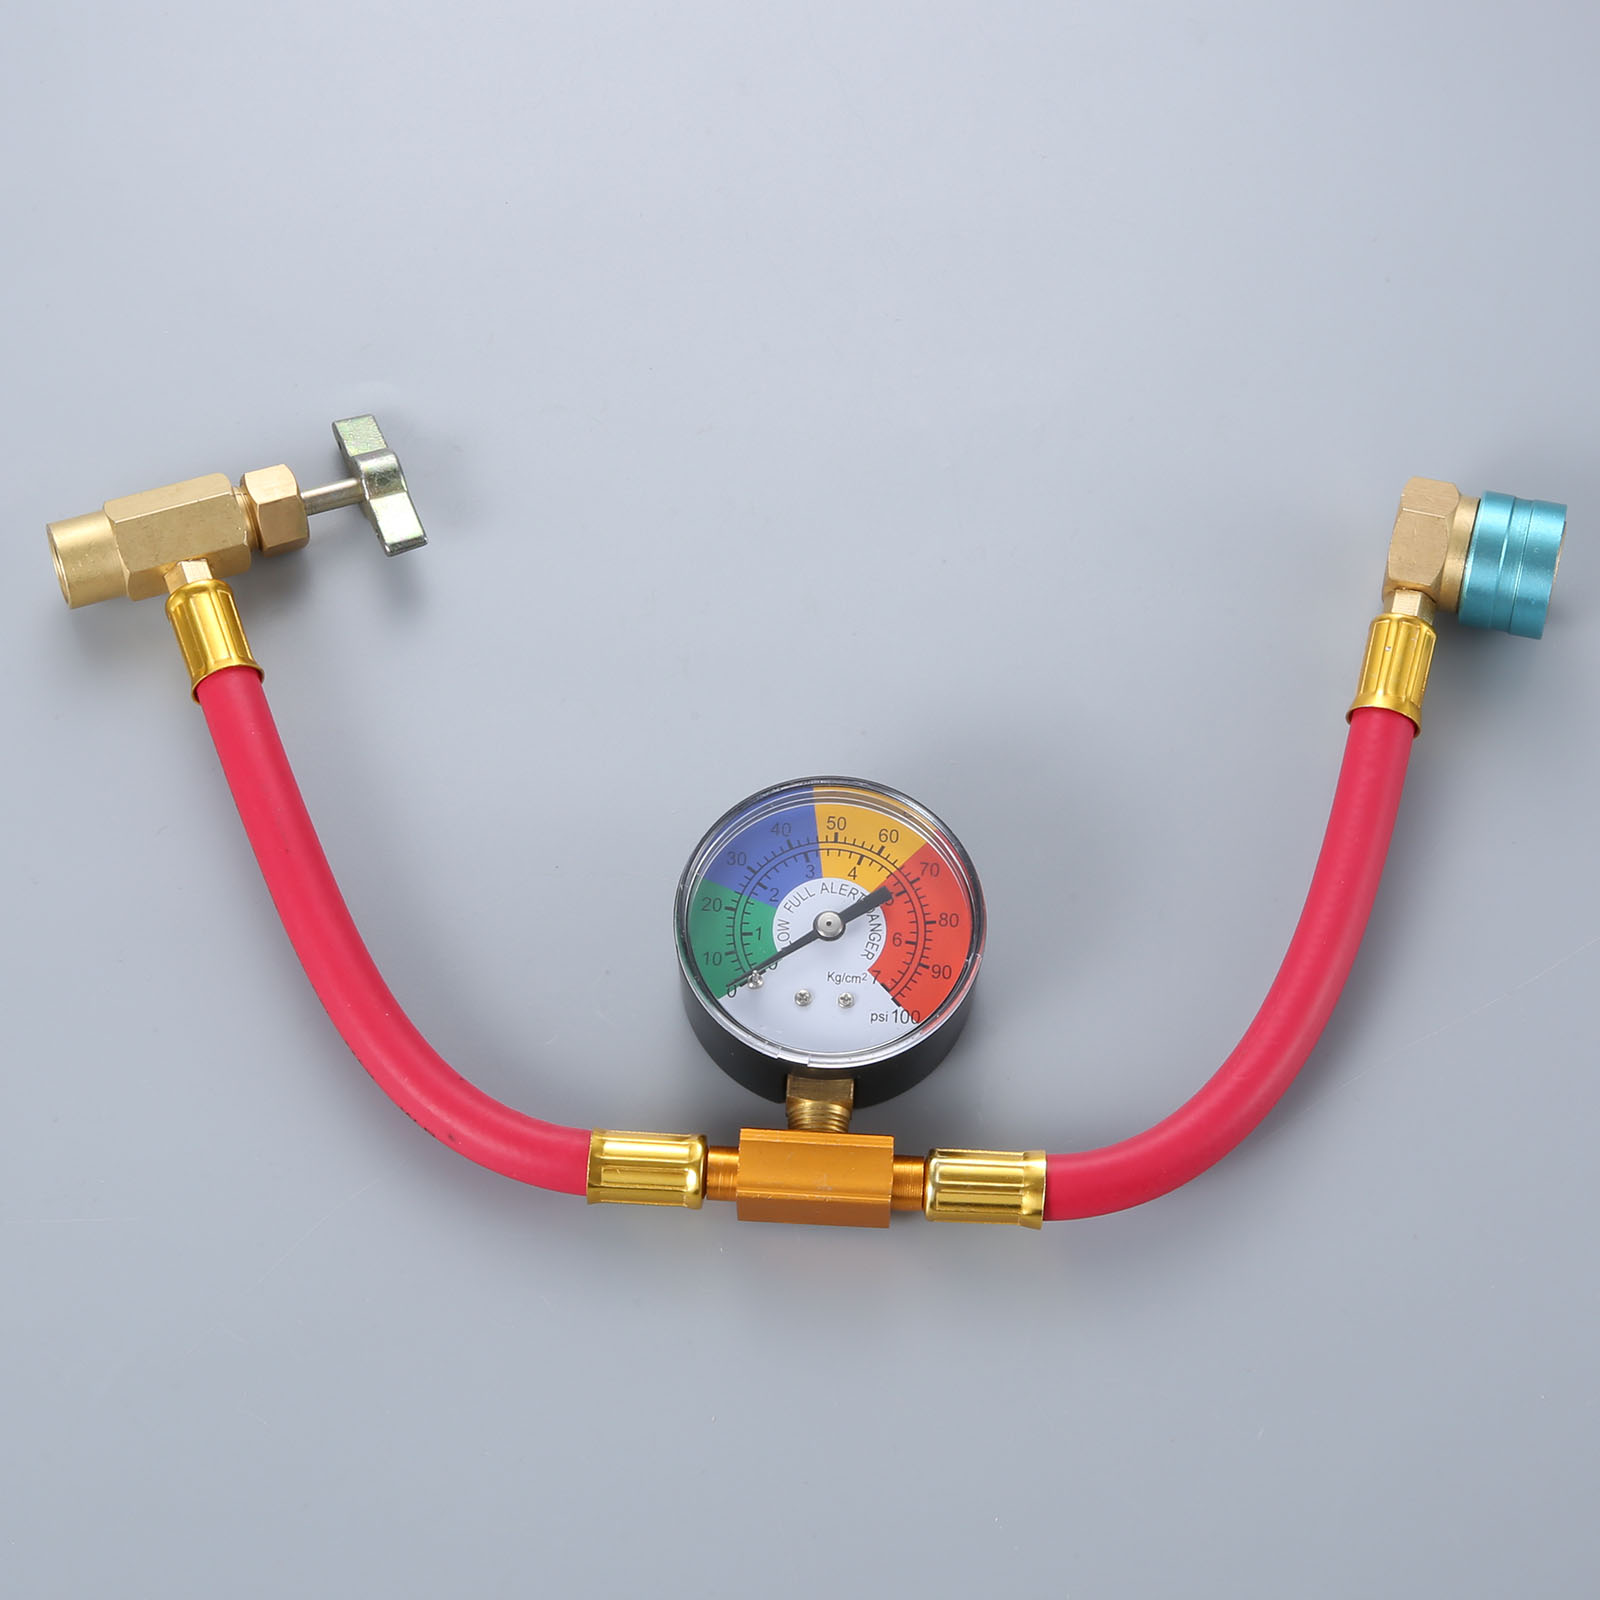 Low Side R1234yf Quick Coupler Refrigerant Recharge Hose Kit Pressure Gauge Can Opener Quick Coupler-in Air-conditioning Installation from Automobiles & Motorcycles